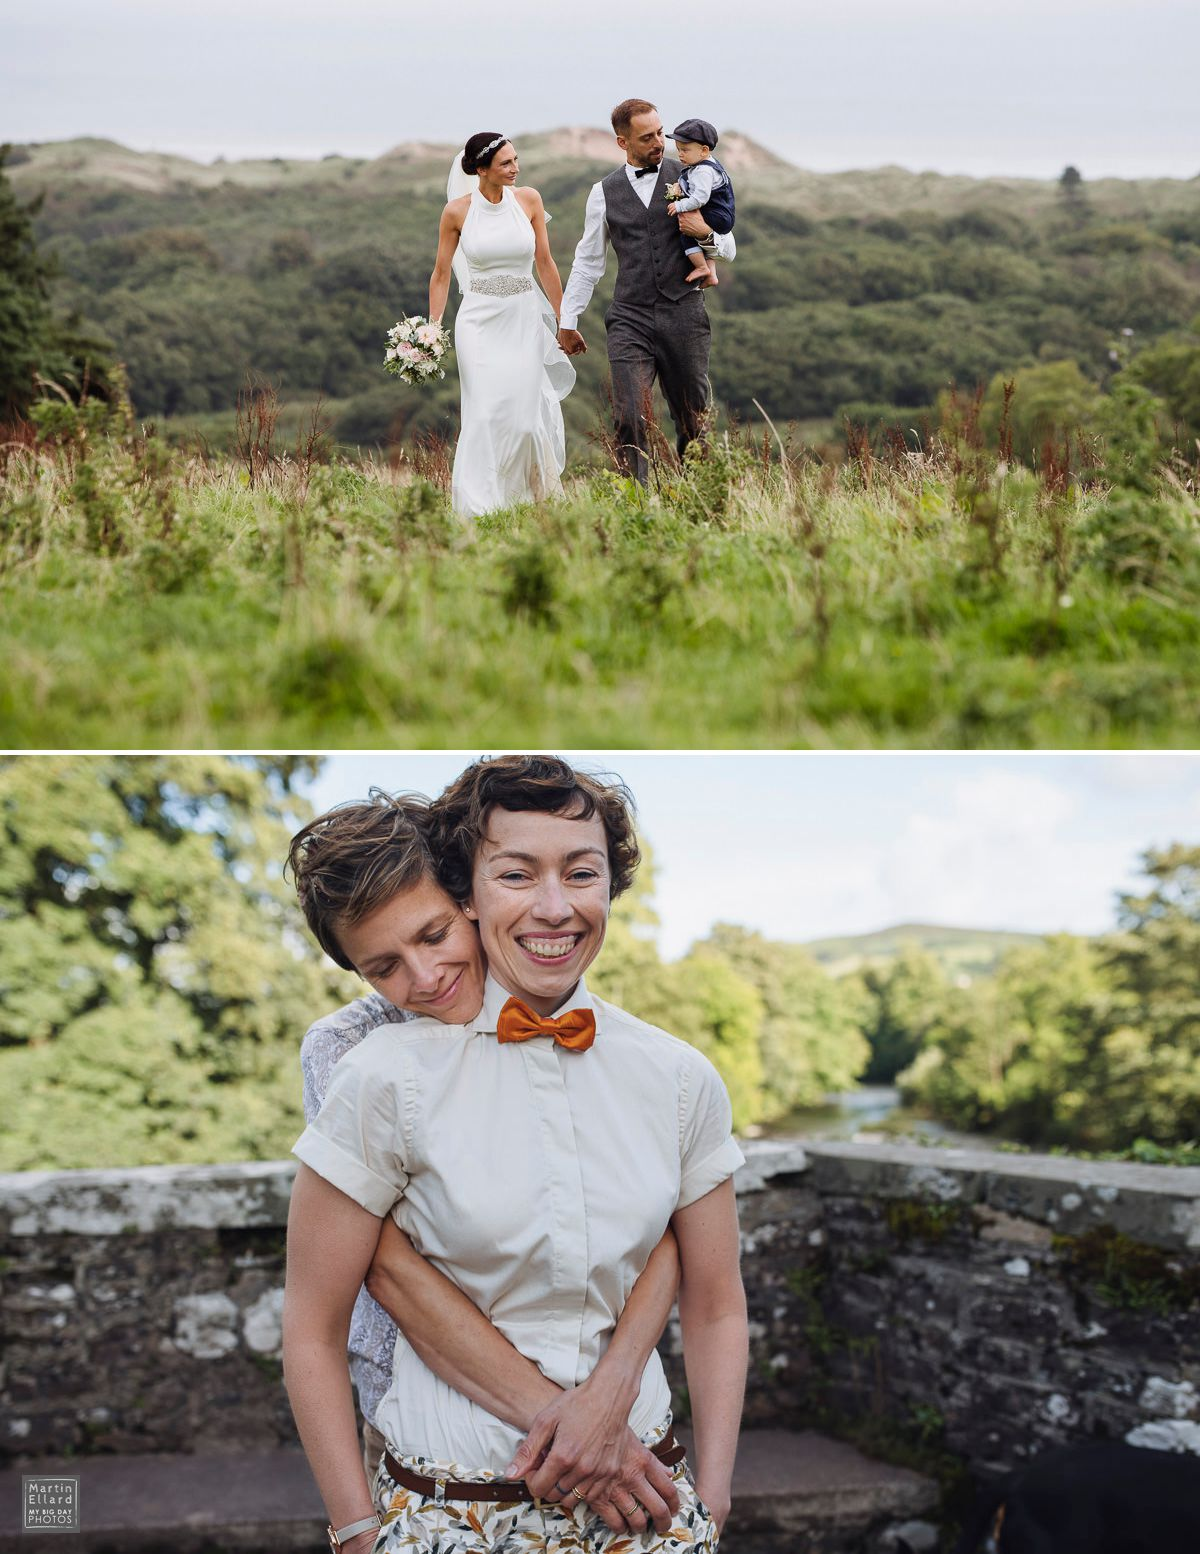 wedding photographer 2016 highlights